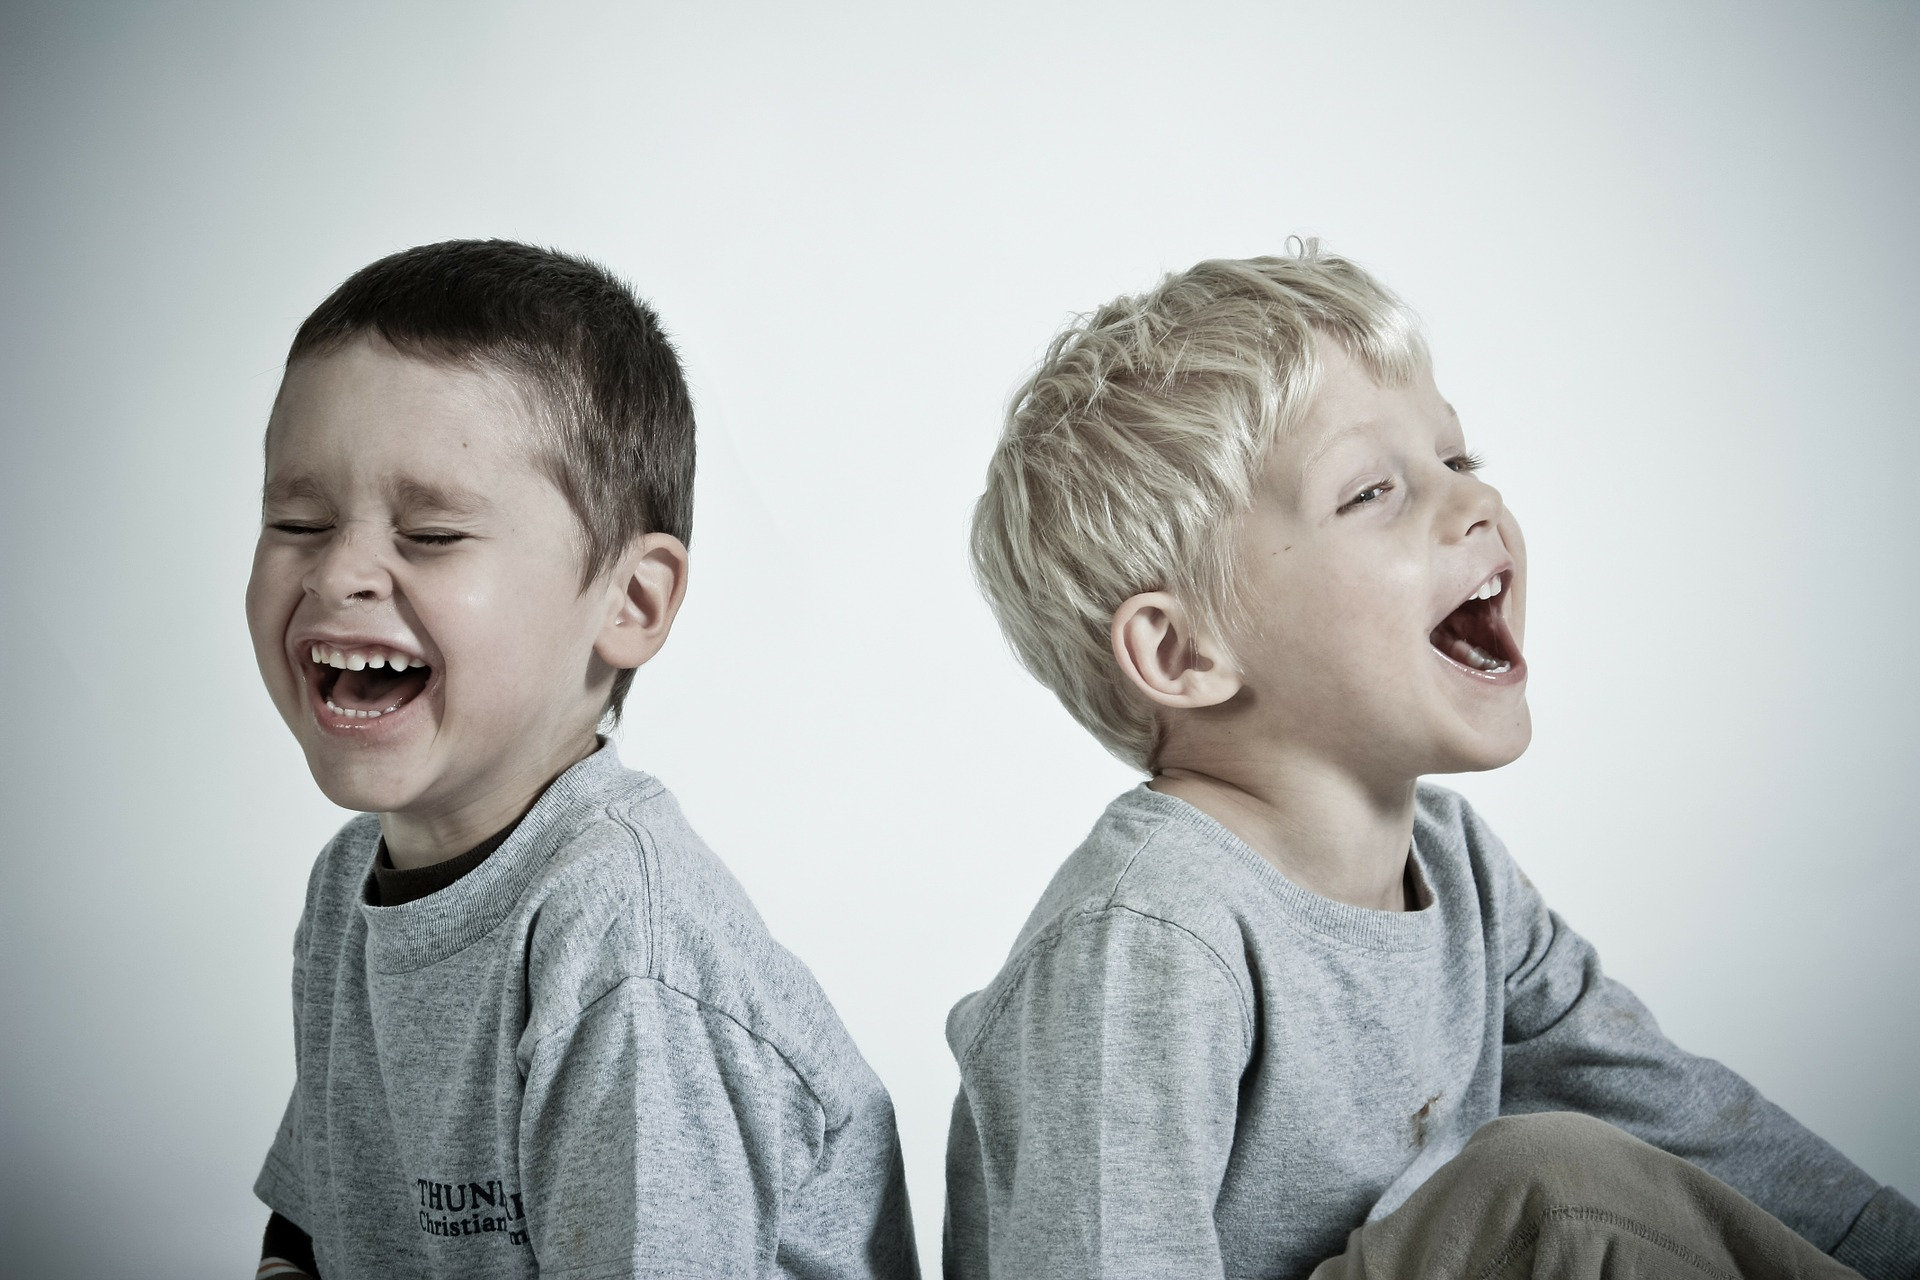 Why It May Be a Good Idea to Laugh a Bit More in the Months Ahead